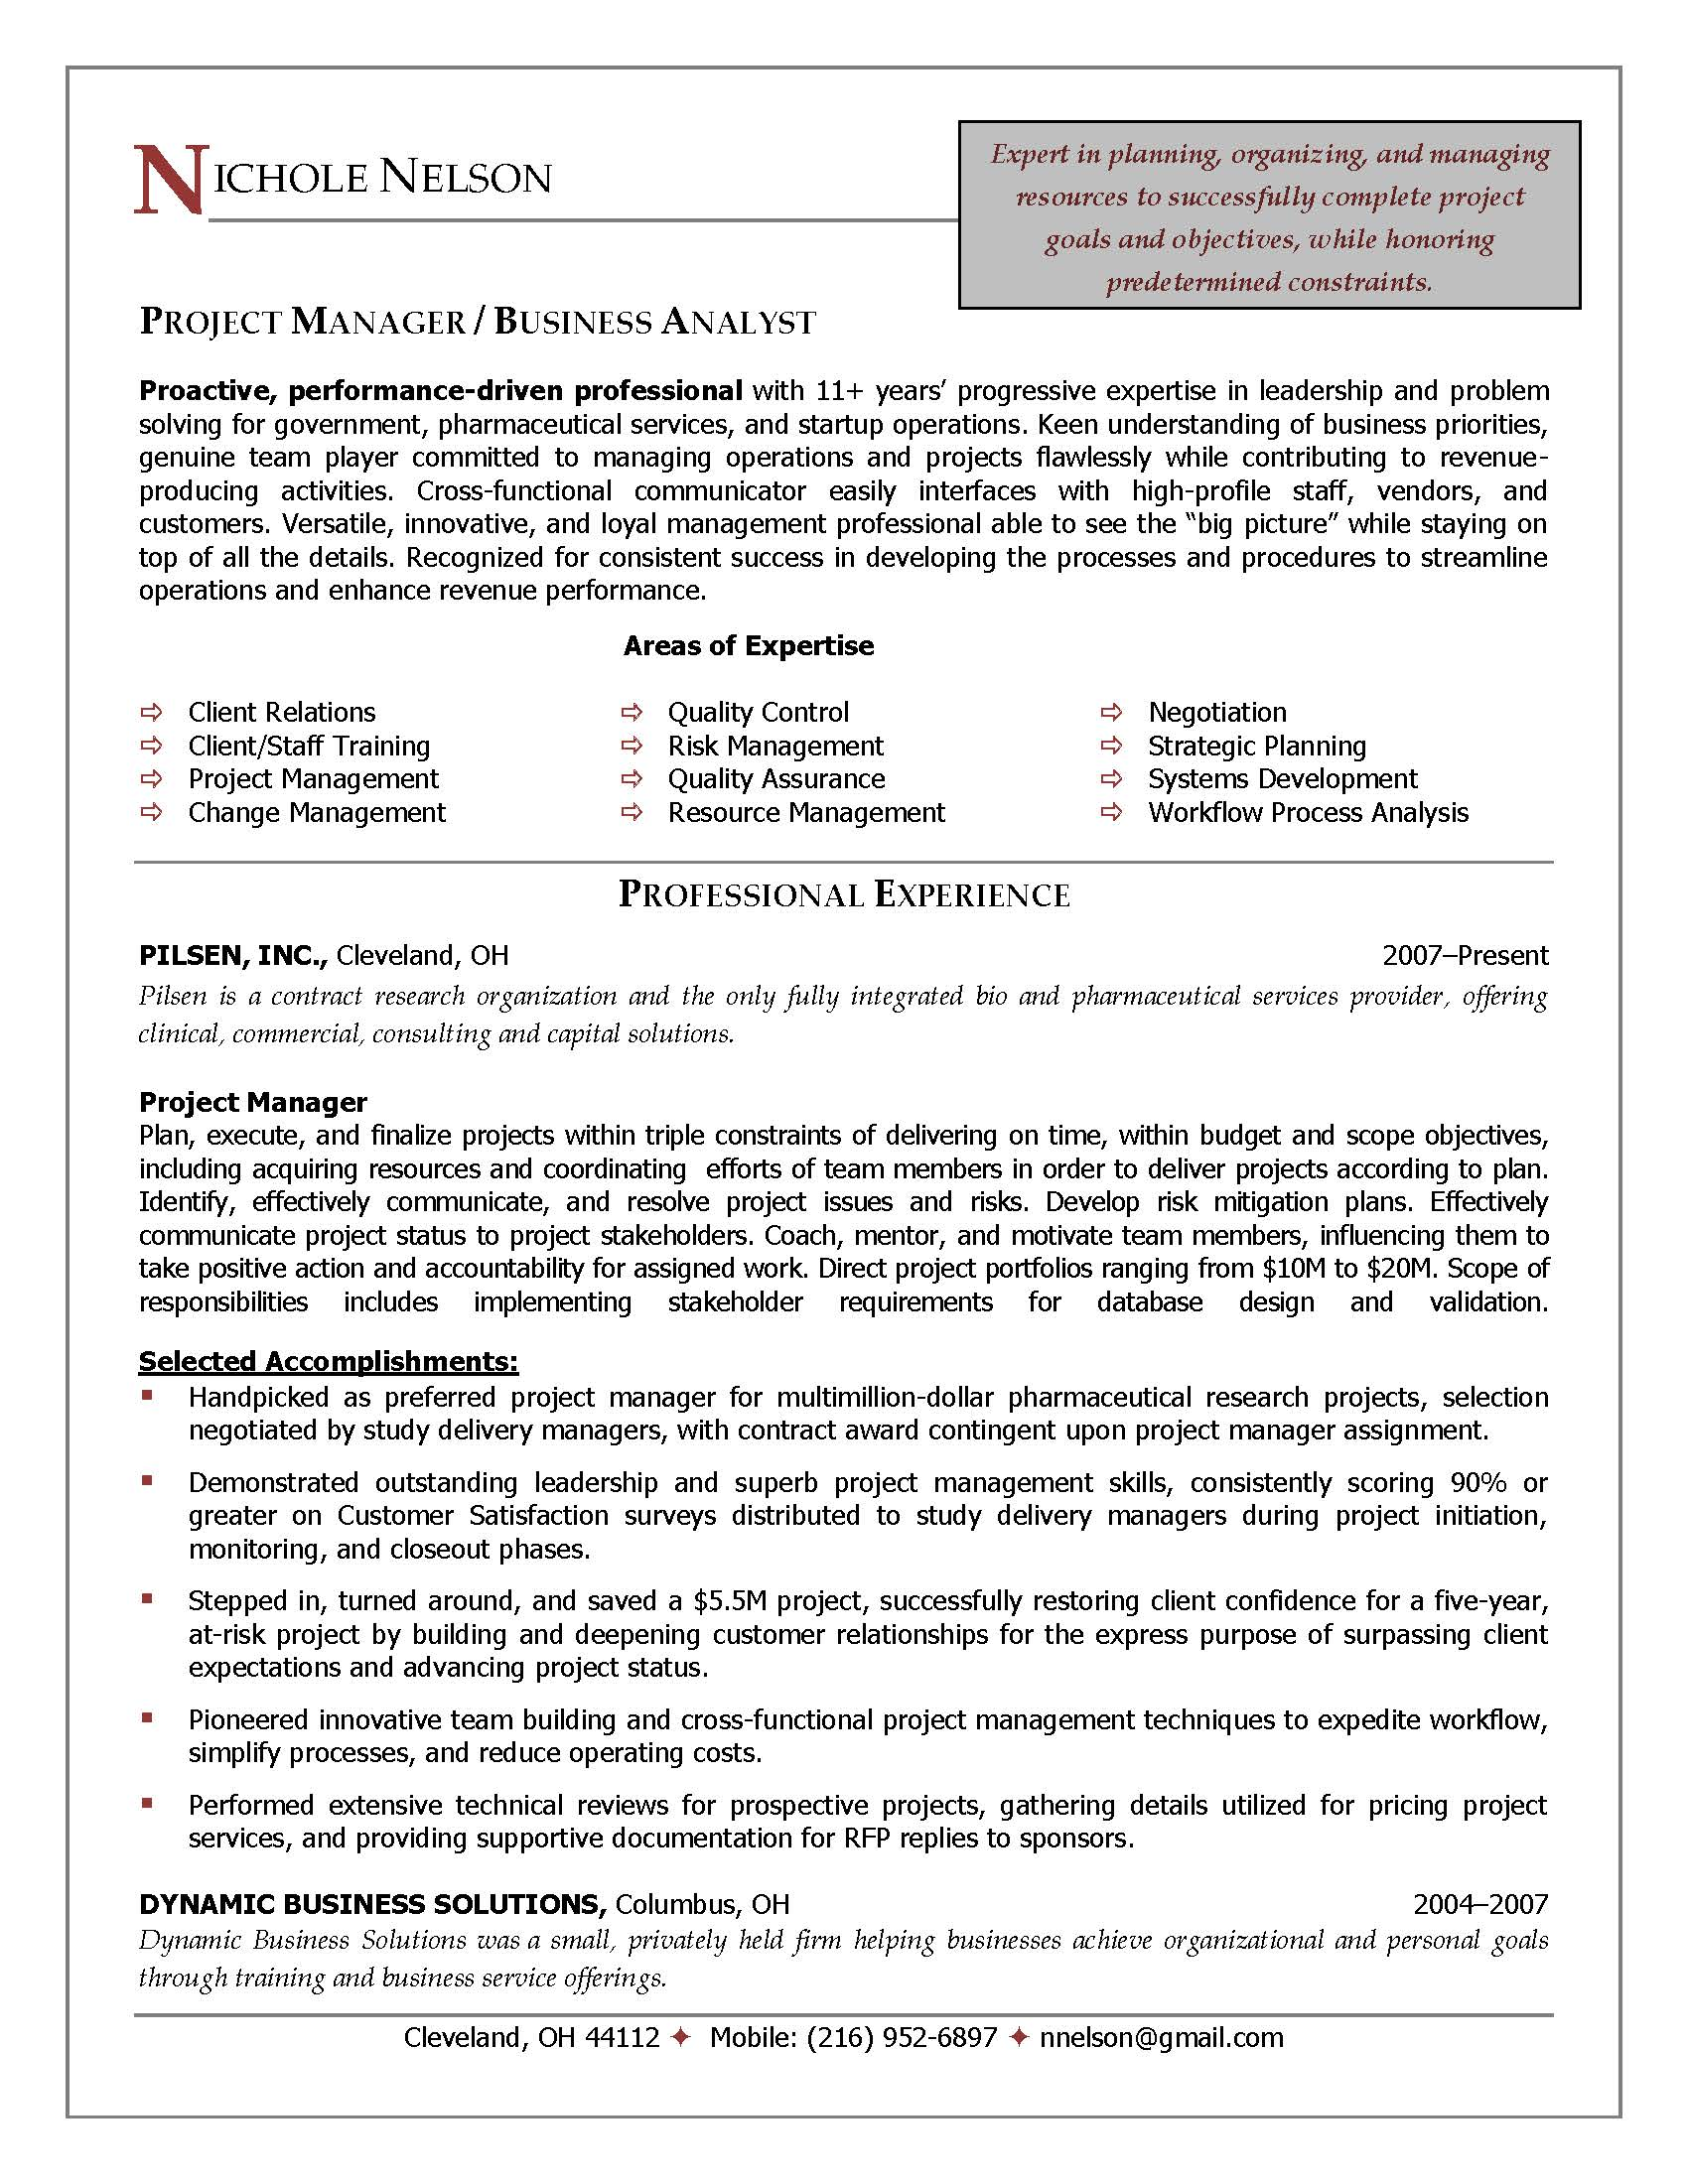 Project Manager Resume Sample, Provided By Elite Resume Writing Services  Manager Resume